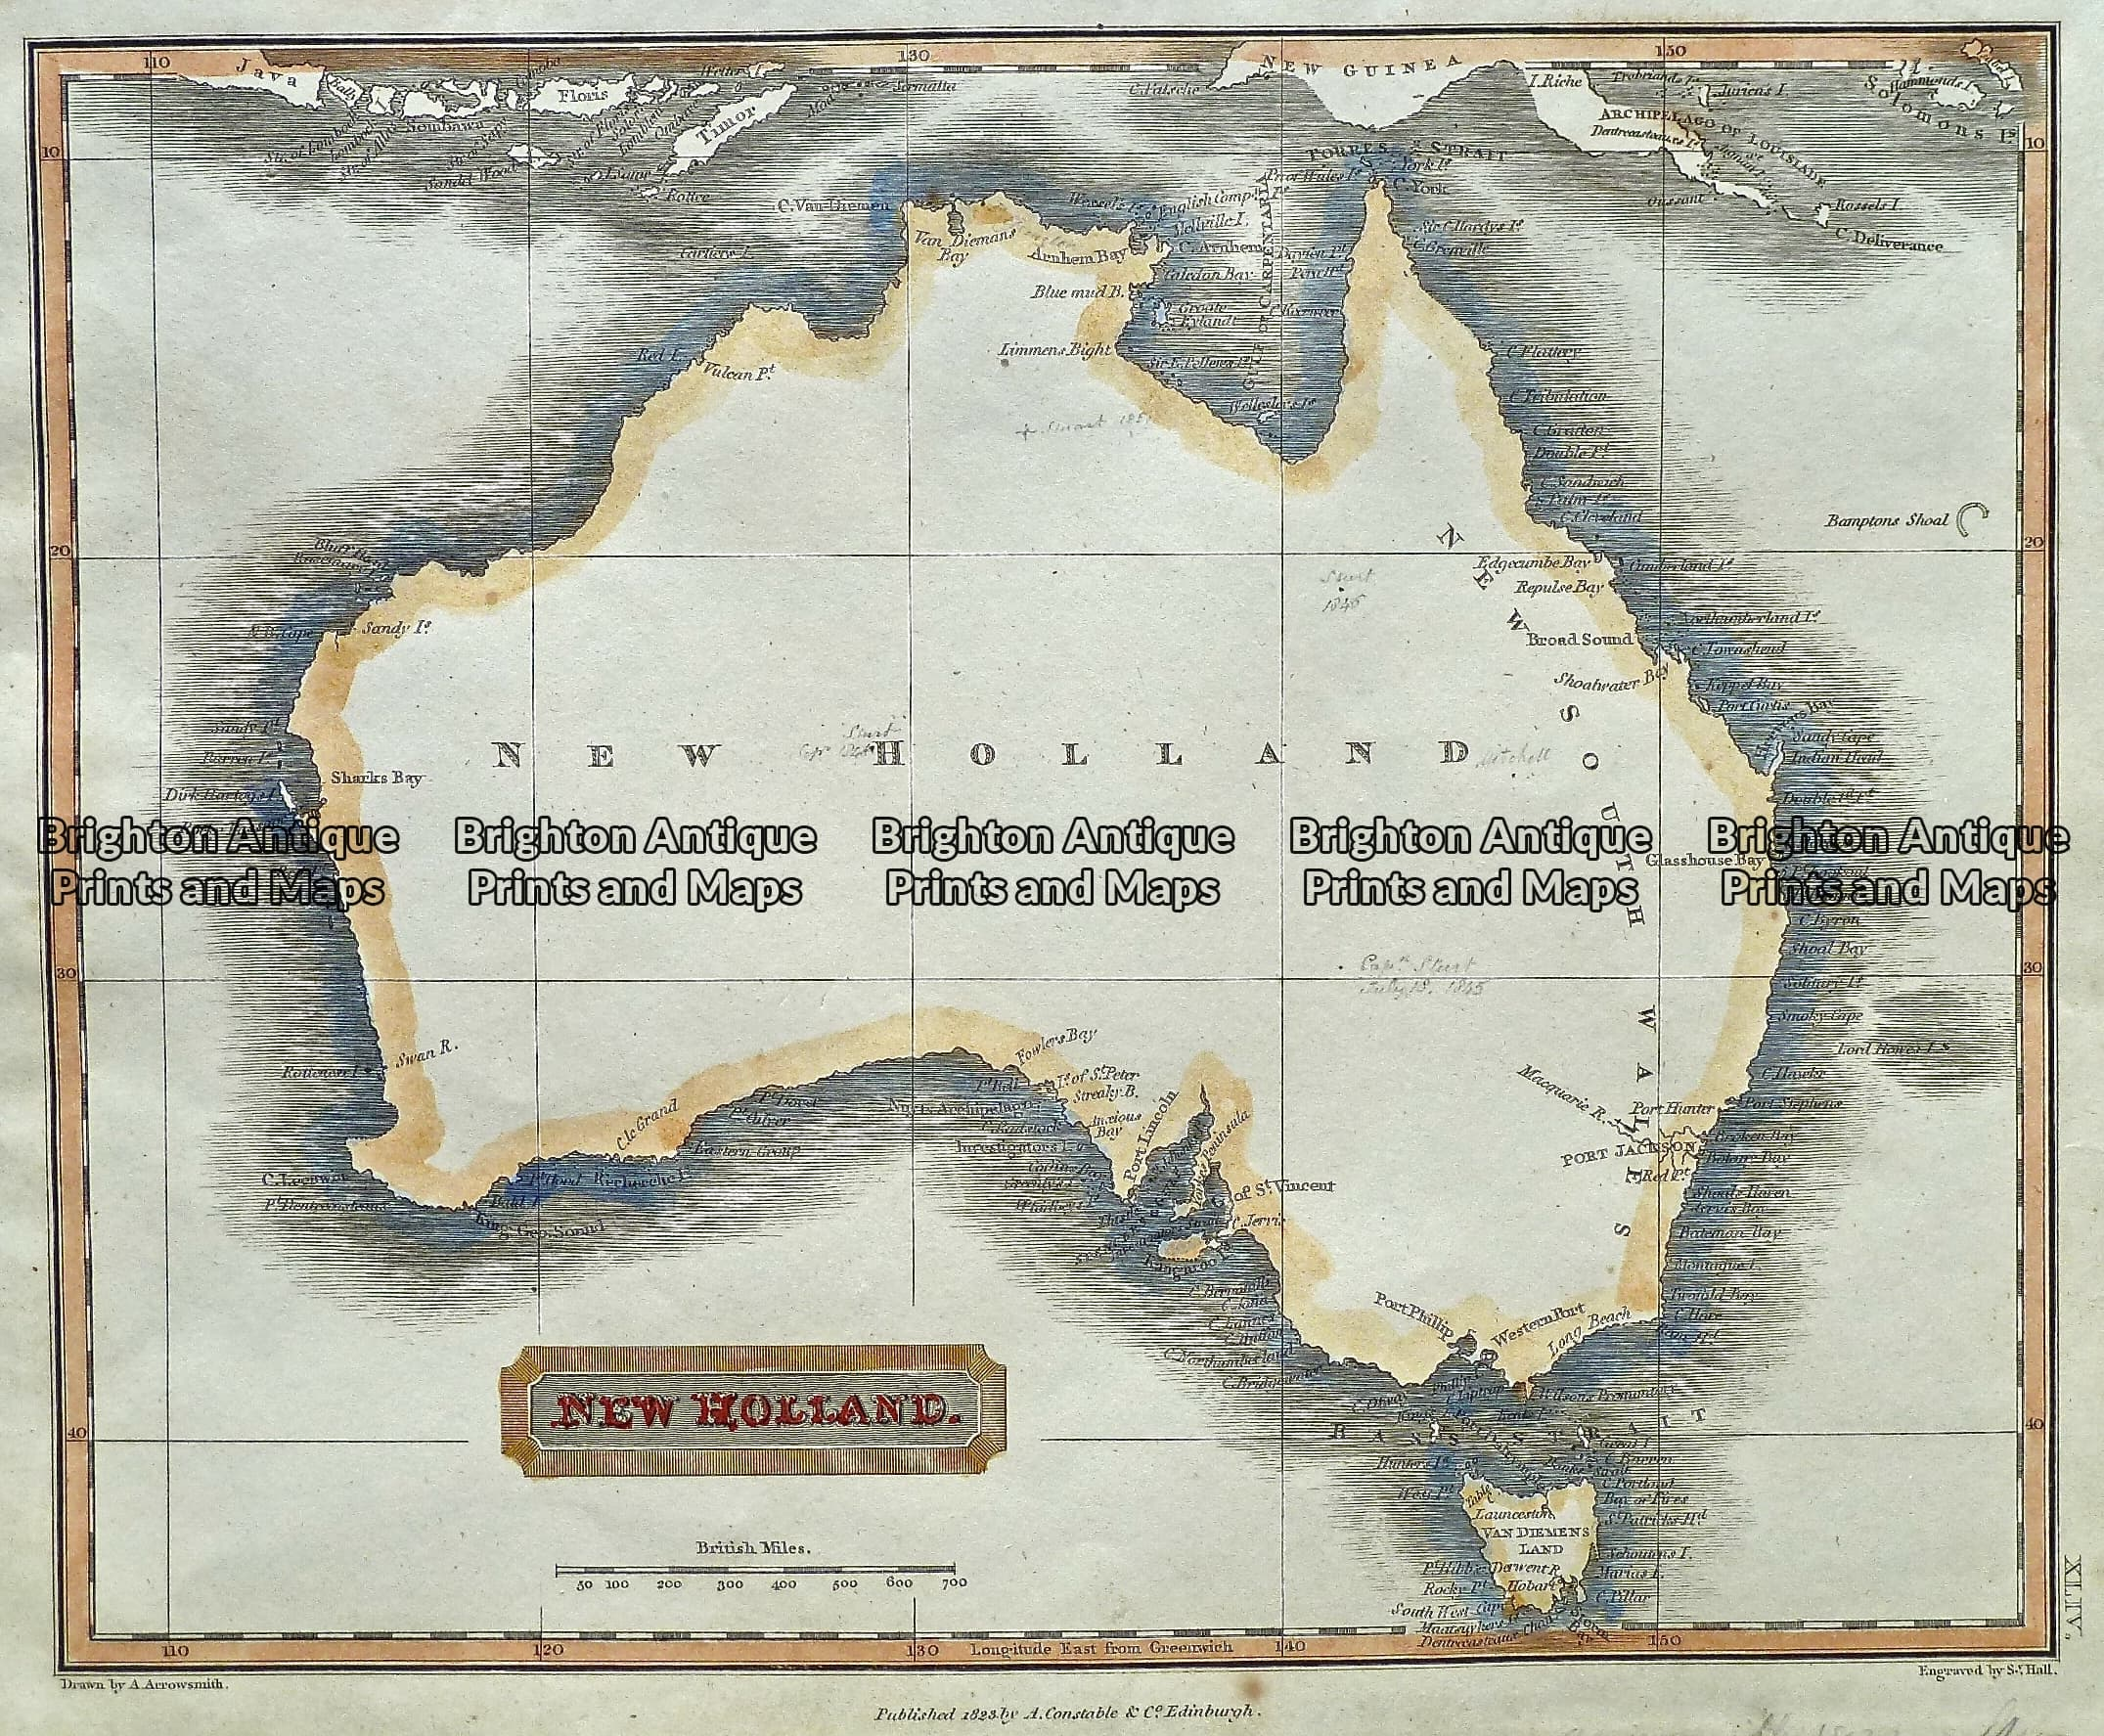 Map Of Australia To Buy.Antique Map 230 568 New Holland Australia By S Hall C 1823 Brighton Antique Prints And Maps Shop Buy Now